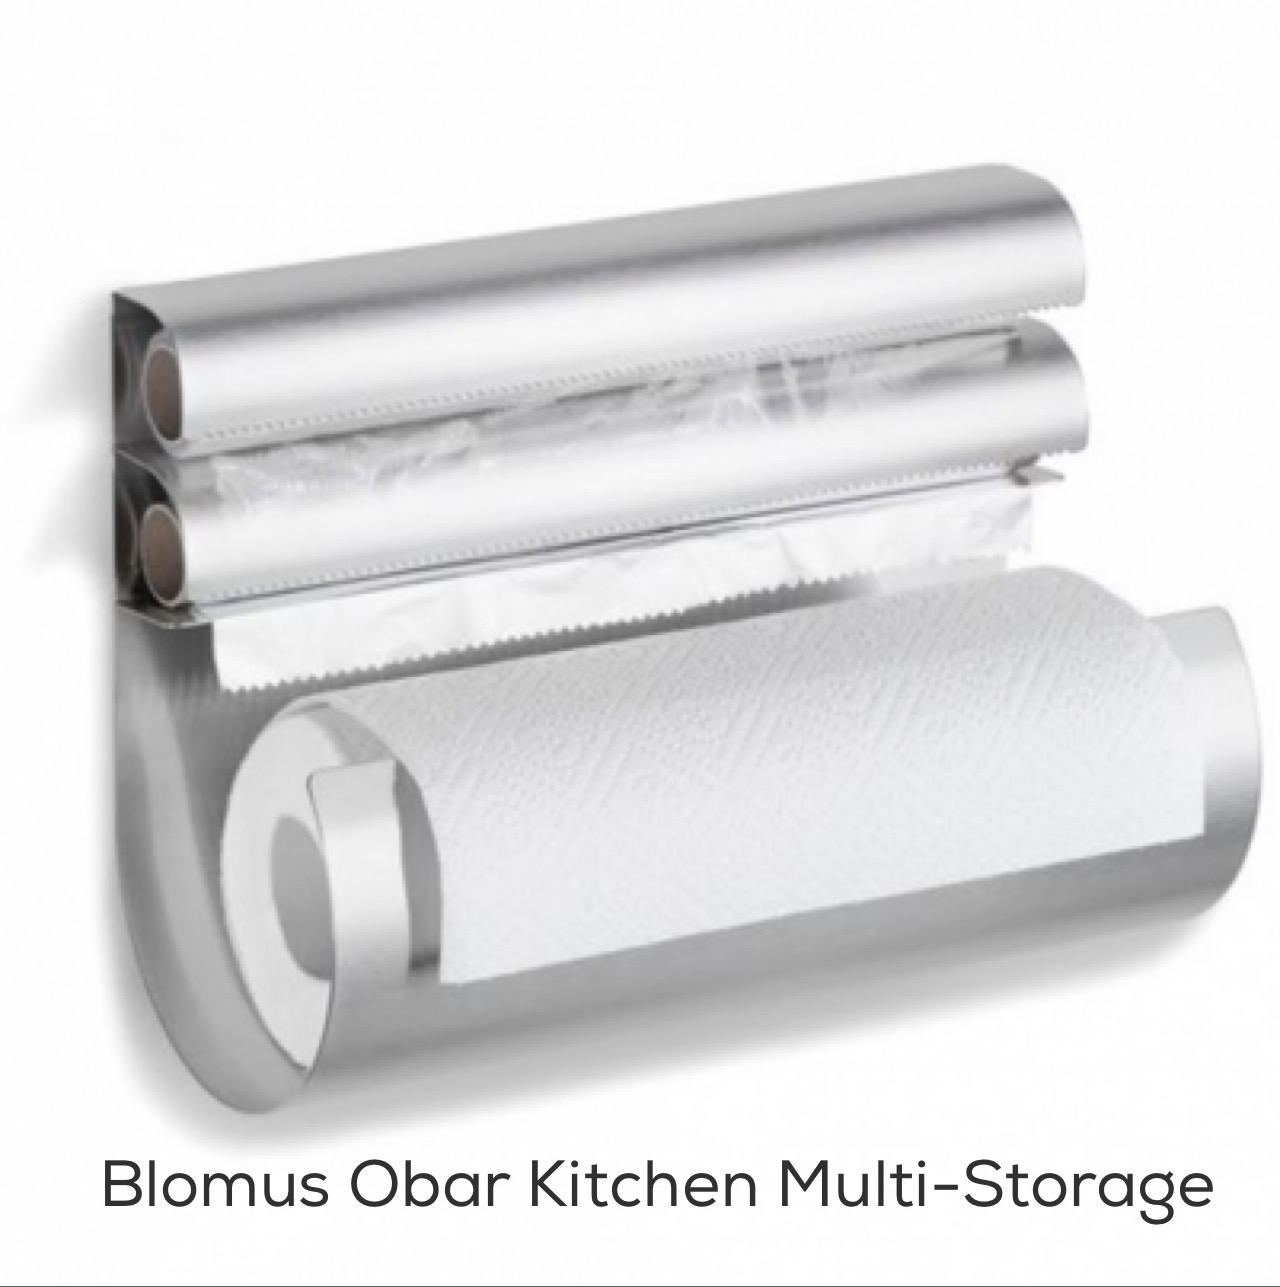 Blomus Obar Kitchen Multi-Storage